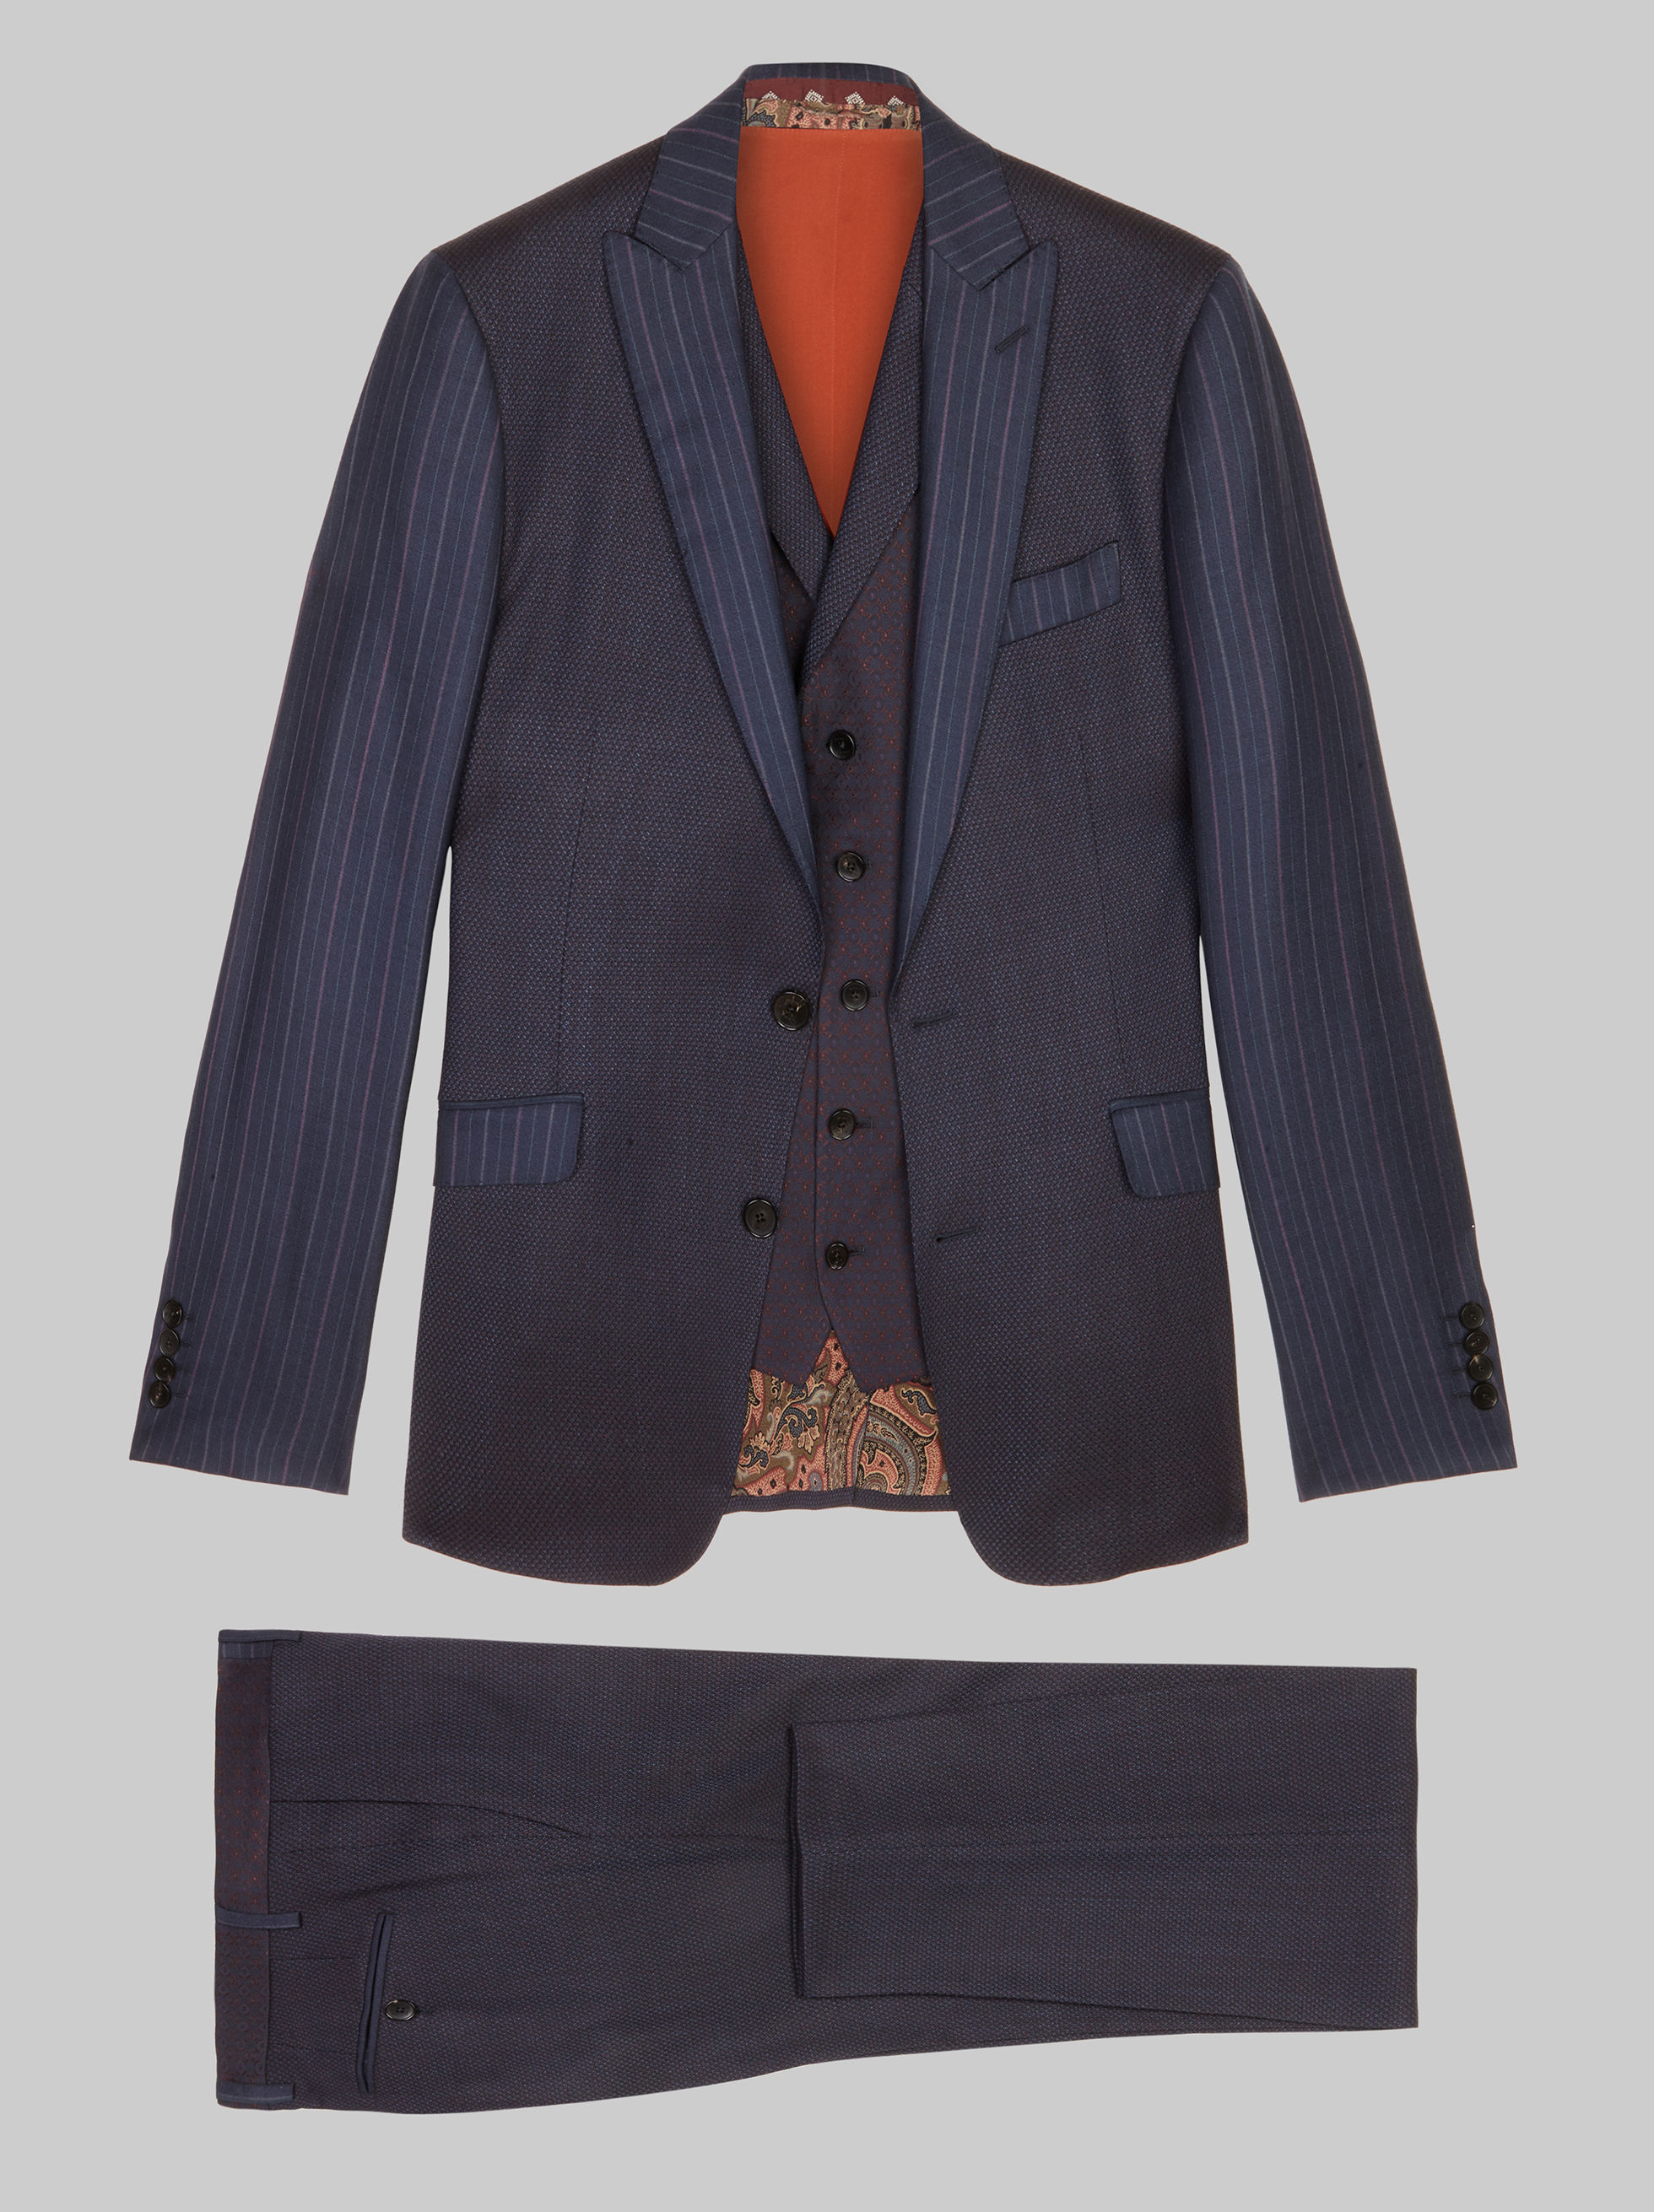 THREE-PIECE PATCHWORK SUIT